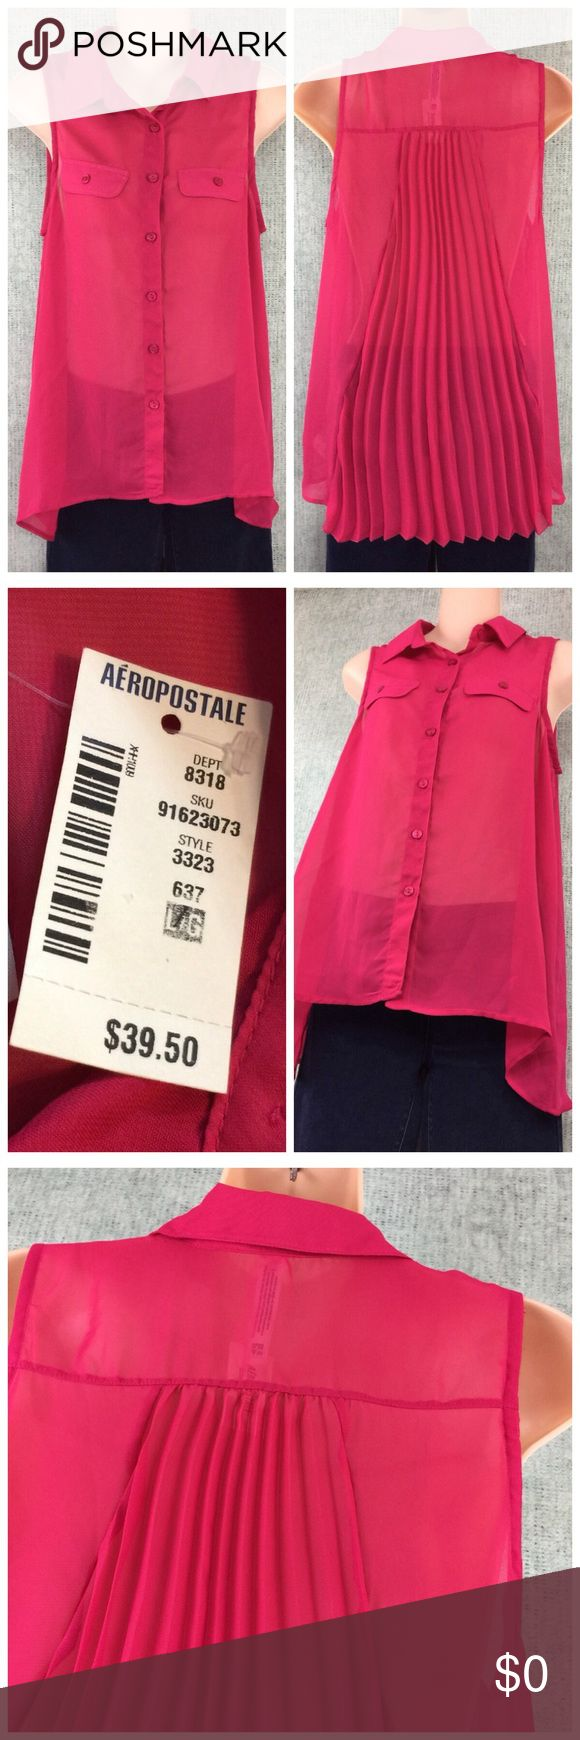 "Aeropostale Hi/Lo Semi Sheer Size Large NWT Made by: Aeropostale Size Large Semi Sheer Summer Button front w/accordion Design Back; Top Shirt Blouse. 100% Polyester Measurements: Underarm to UA 19"" Mid-neck to hem Front 23"" Back 26.5"". NWT. Bundle to SaVe. Thank you for browsing my closet. Aeropostale Tops Button Down Shirts"